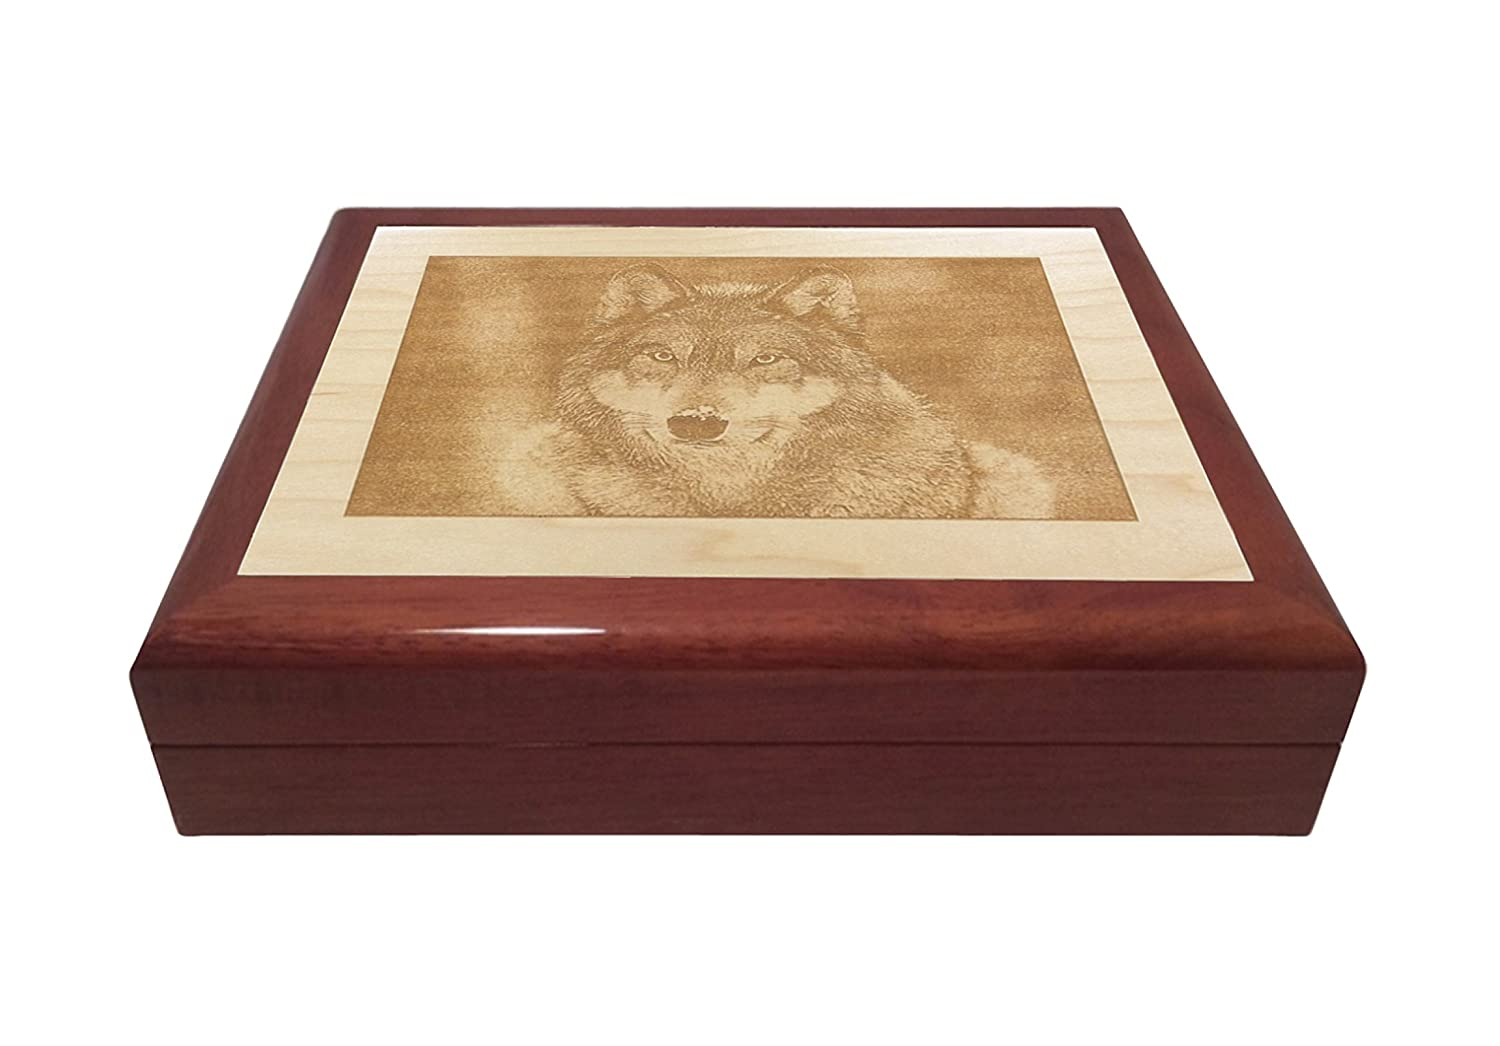 Wolf Engraved Wooden Keepsake Jewelry Box